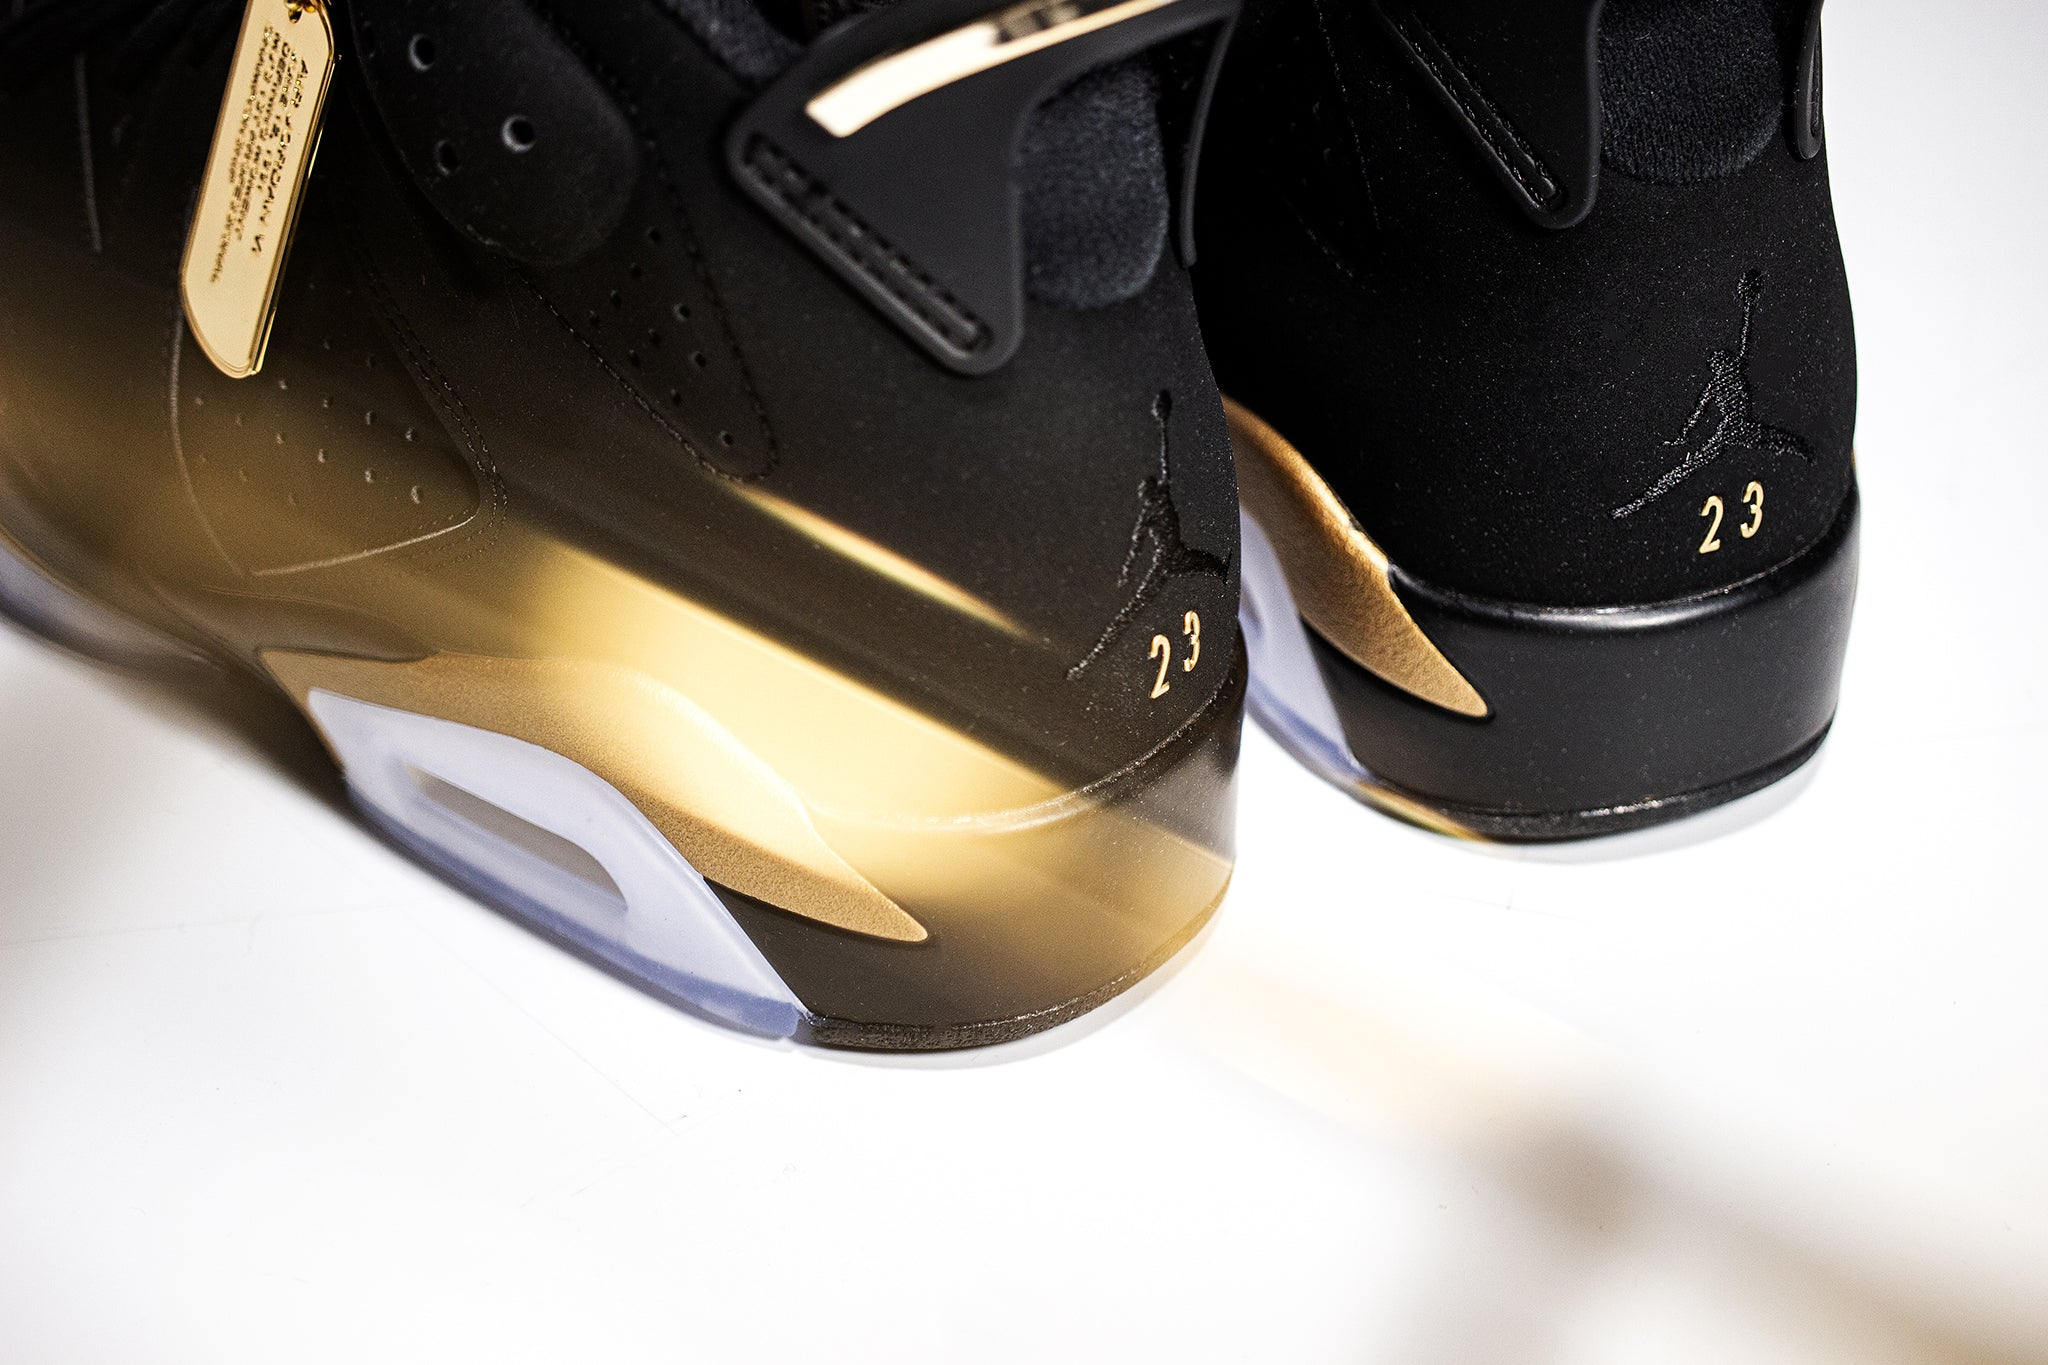 Macro view of jordan 6 dmp heel side details